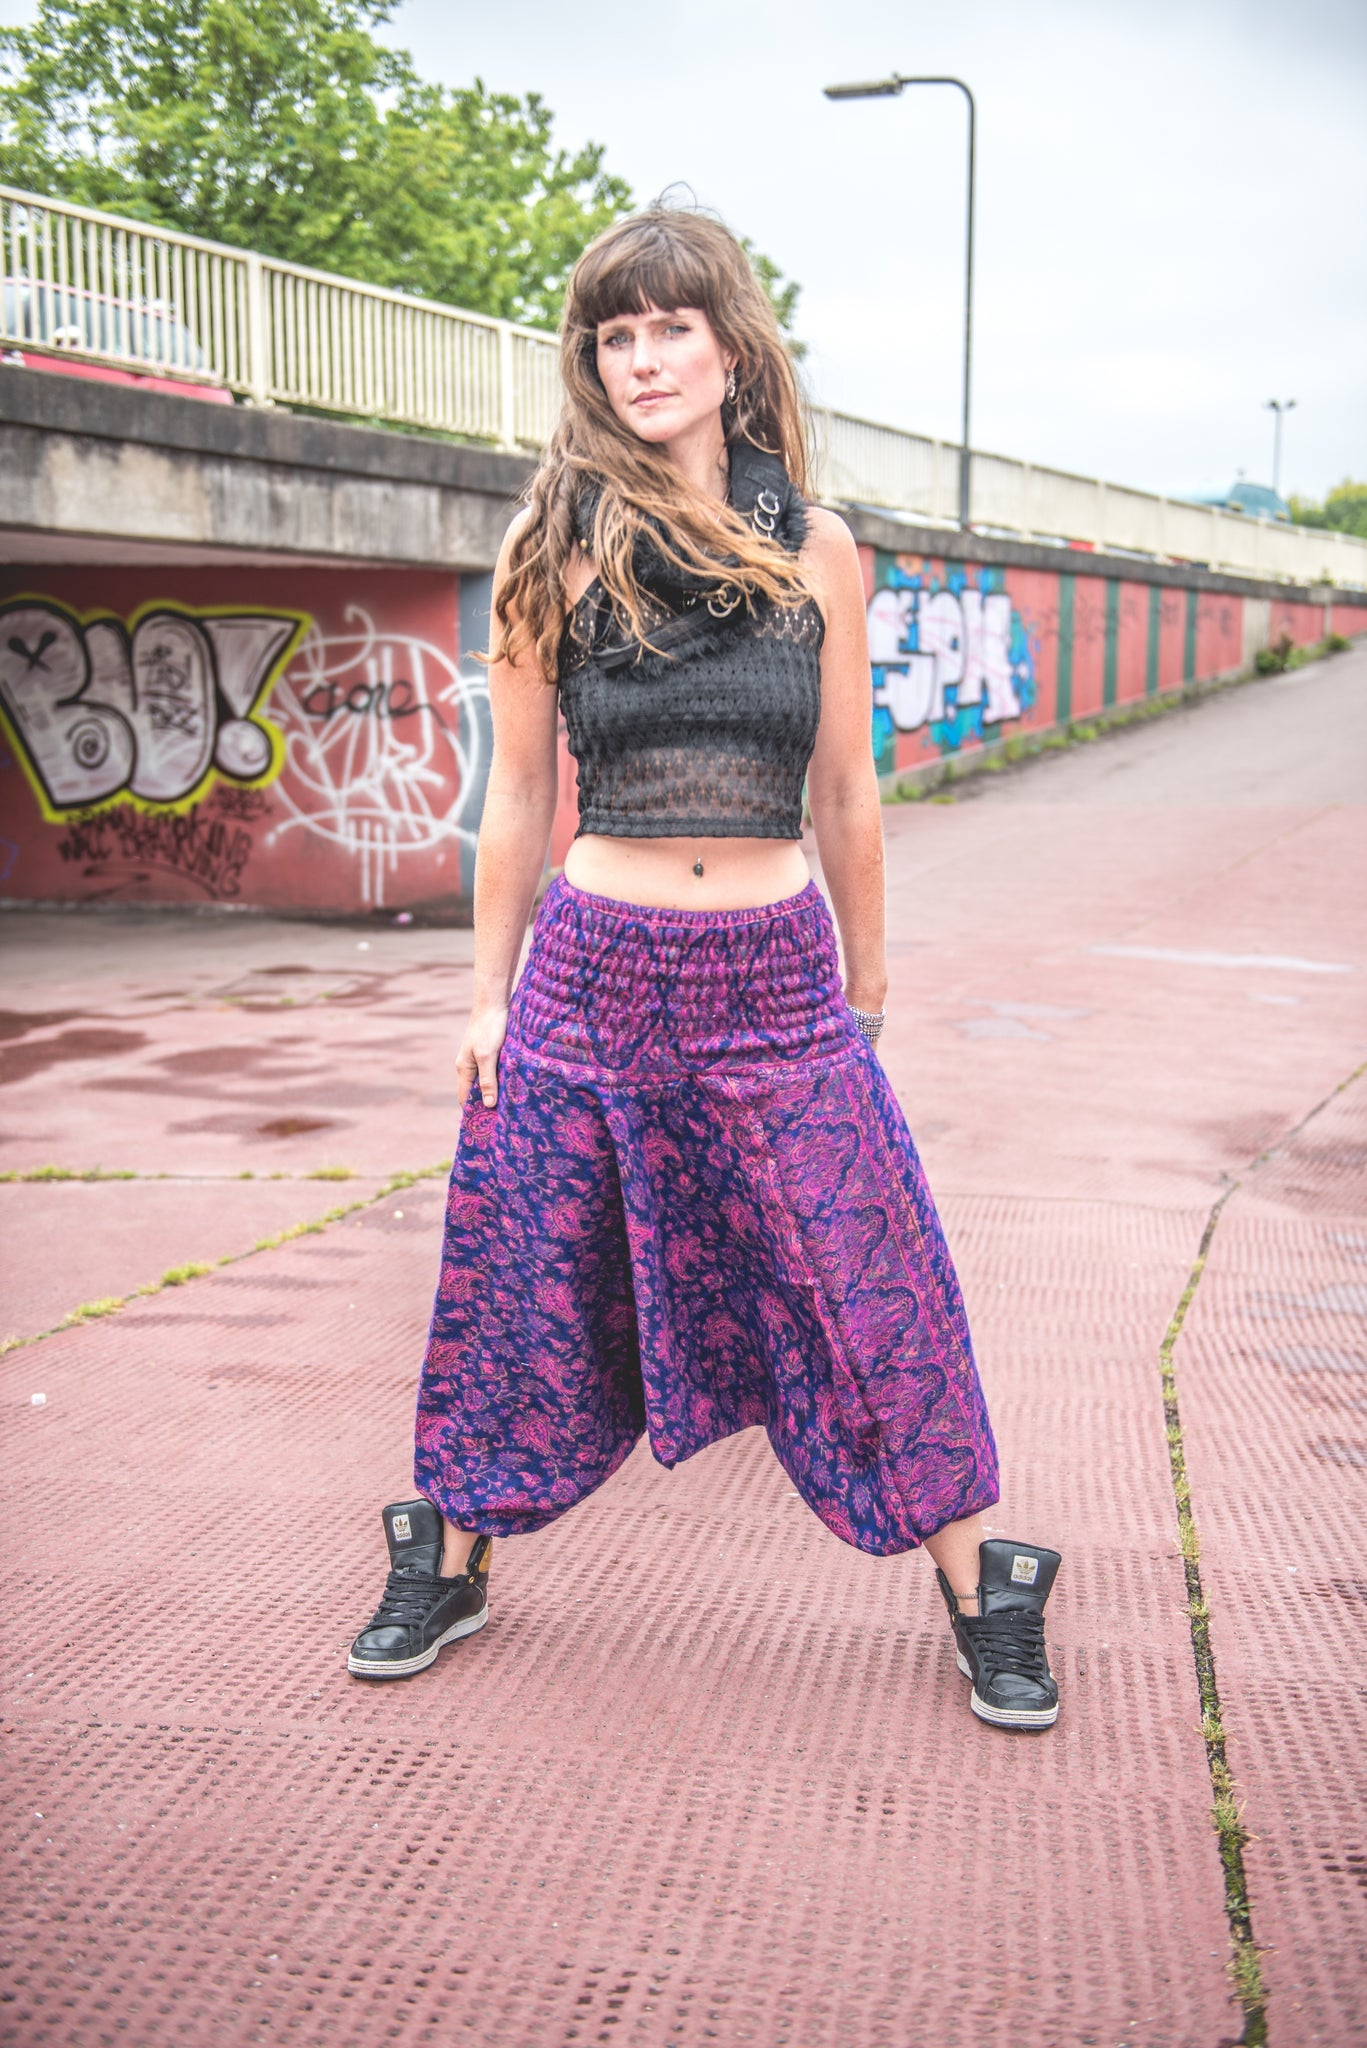 Forage design, boho chothing, harem pants, festival fashion, bristol fashion, bohemian style, boho kaftan, ali baba pants, yoga pants, boho ideas, ethical clothing, sustainable brands